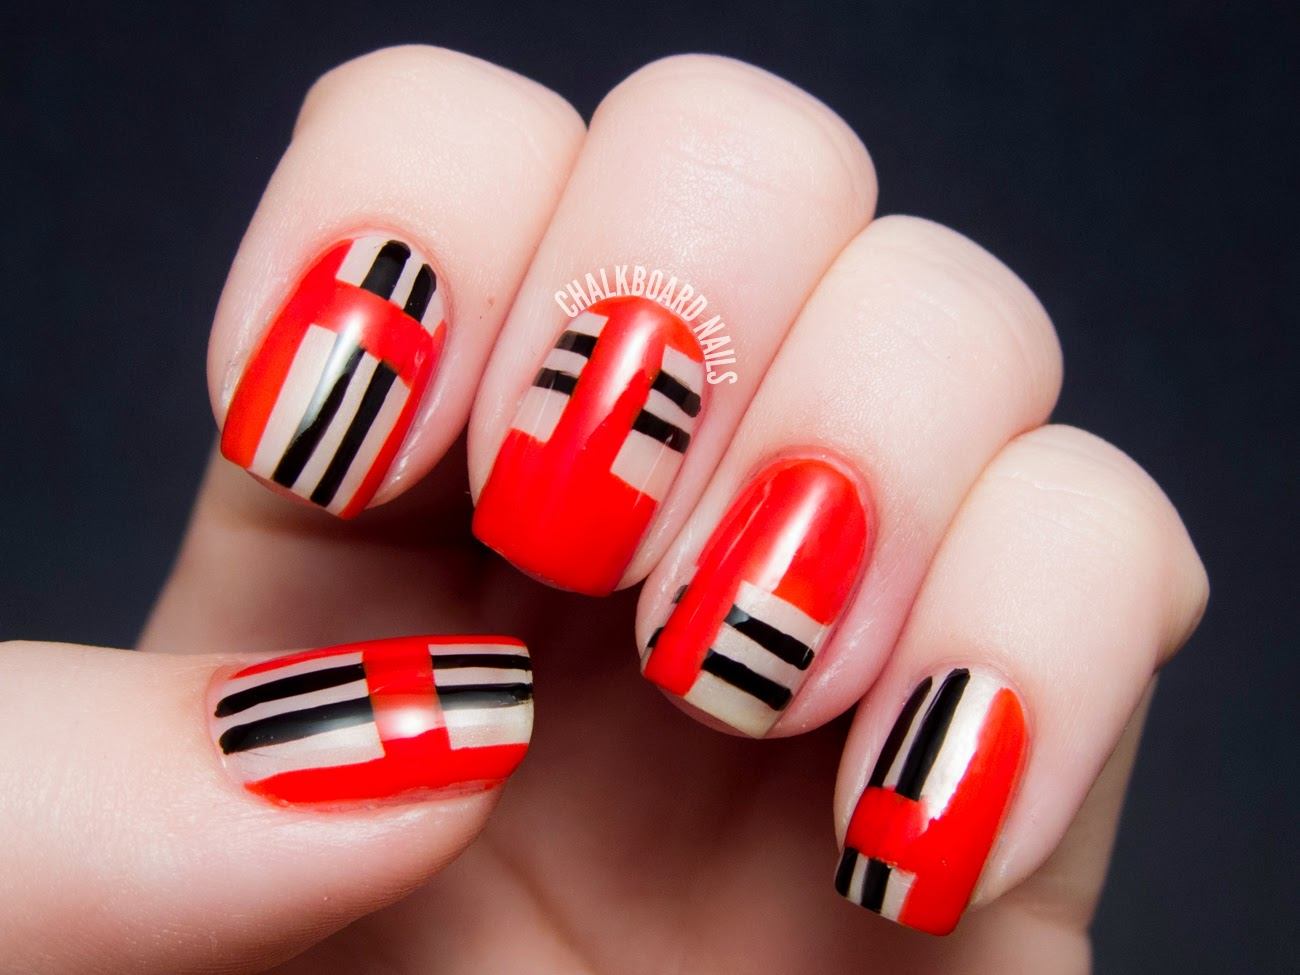 General eye catching red nail art design ideas with black and white